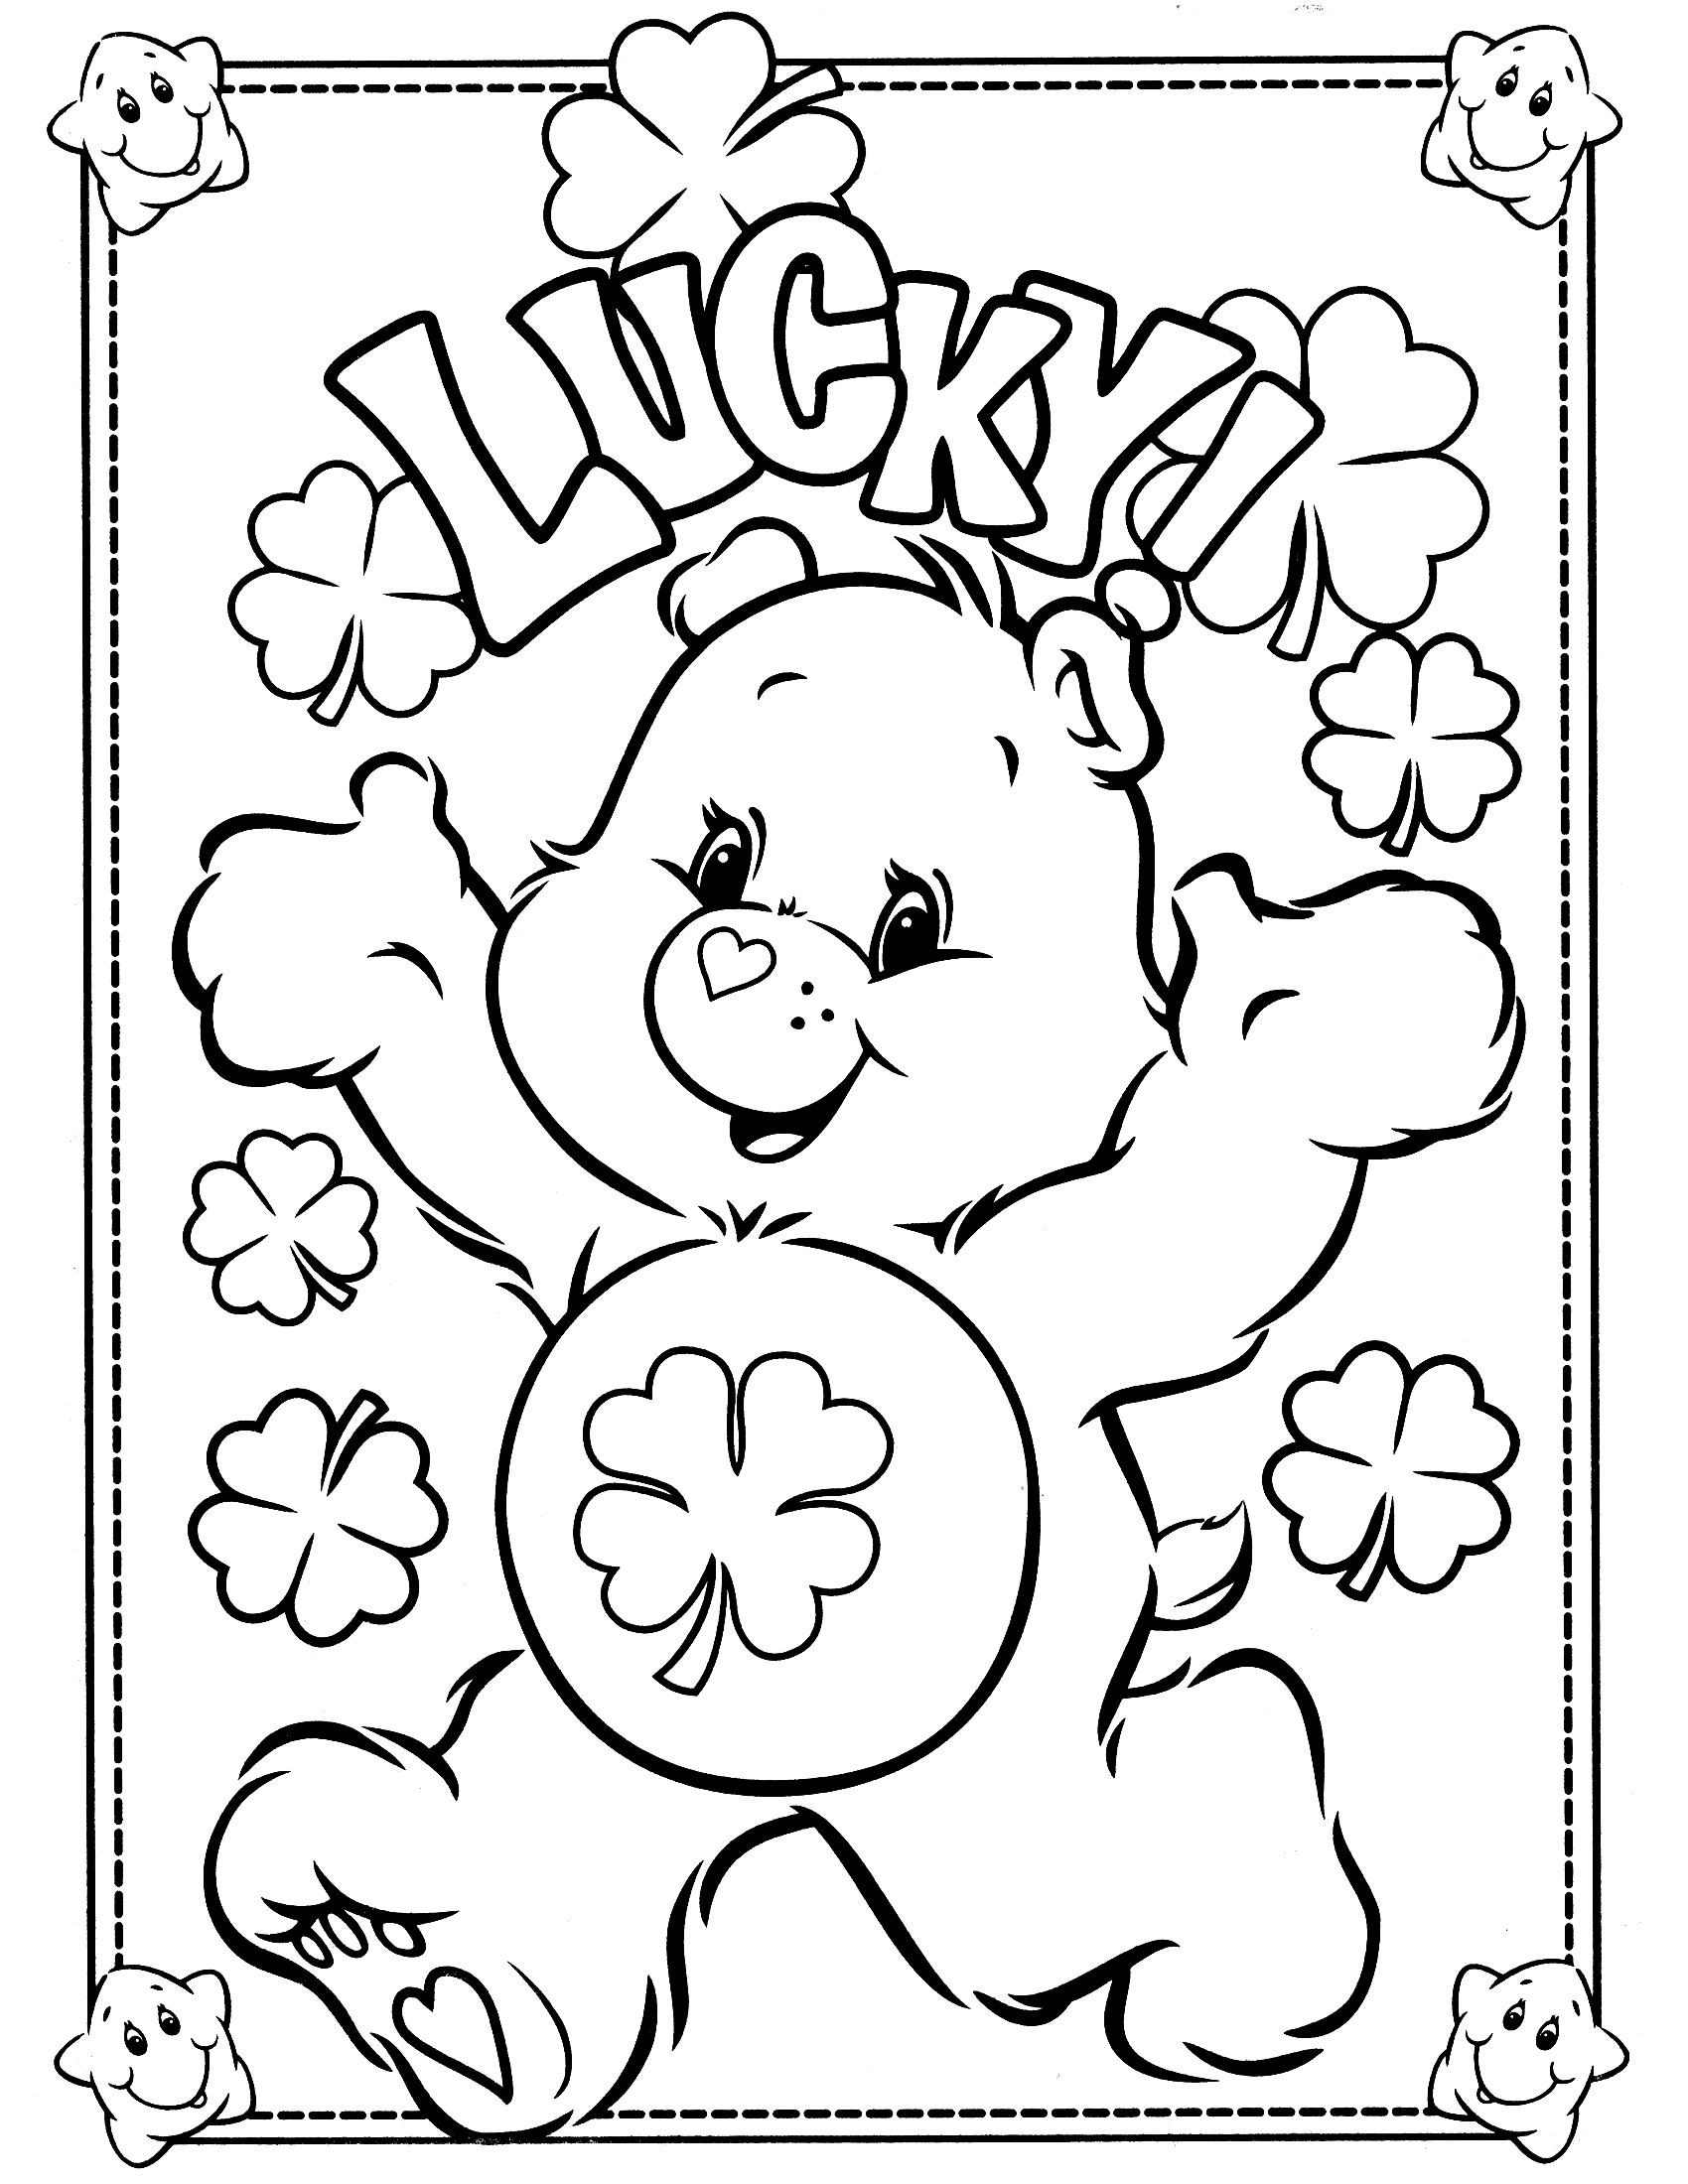 care bear coloring pages christmas - photo#25